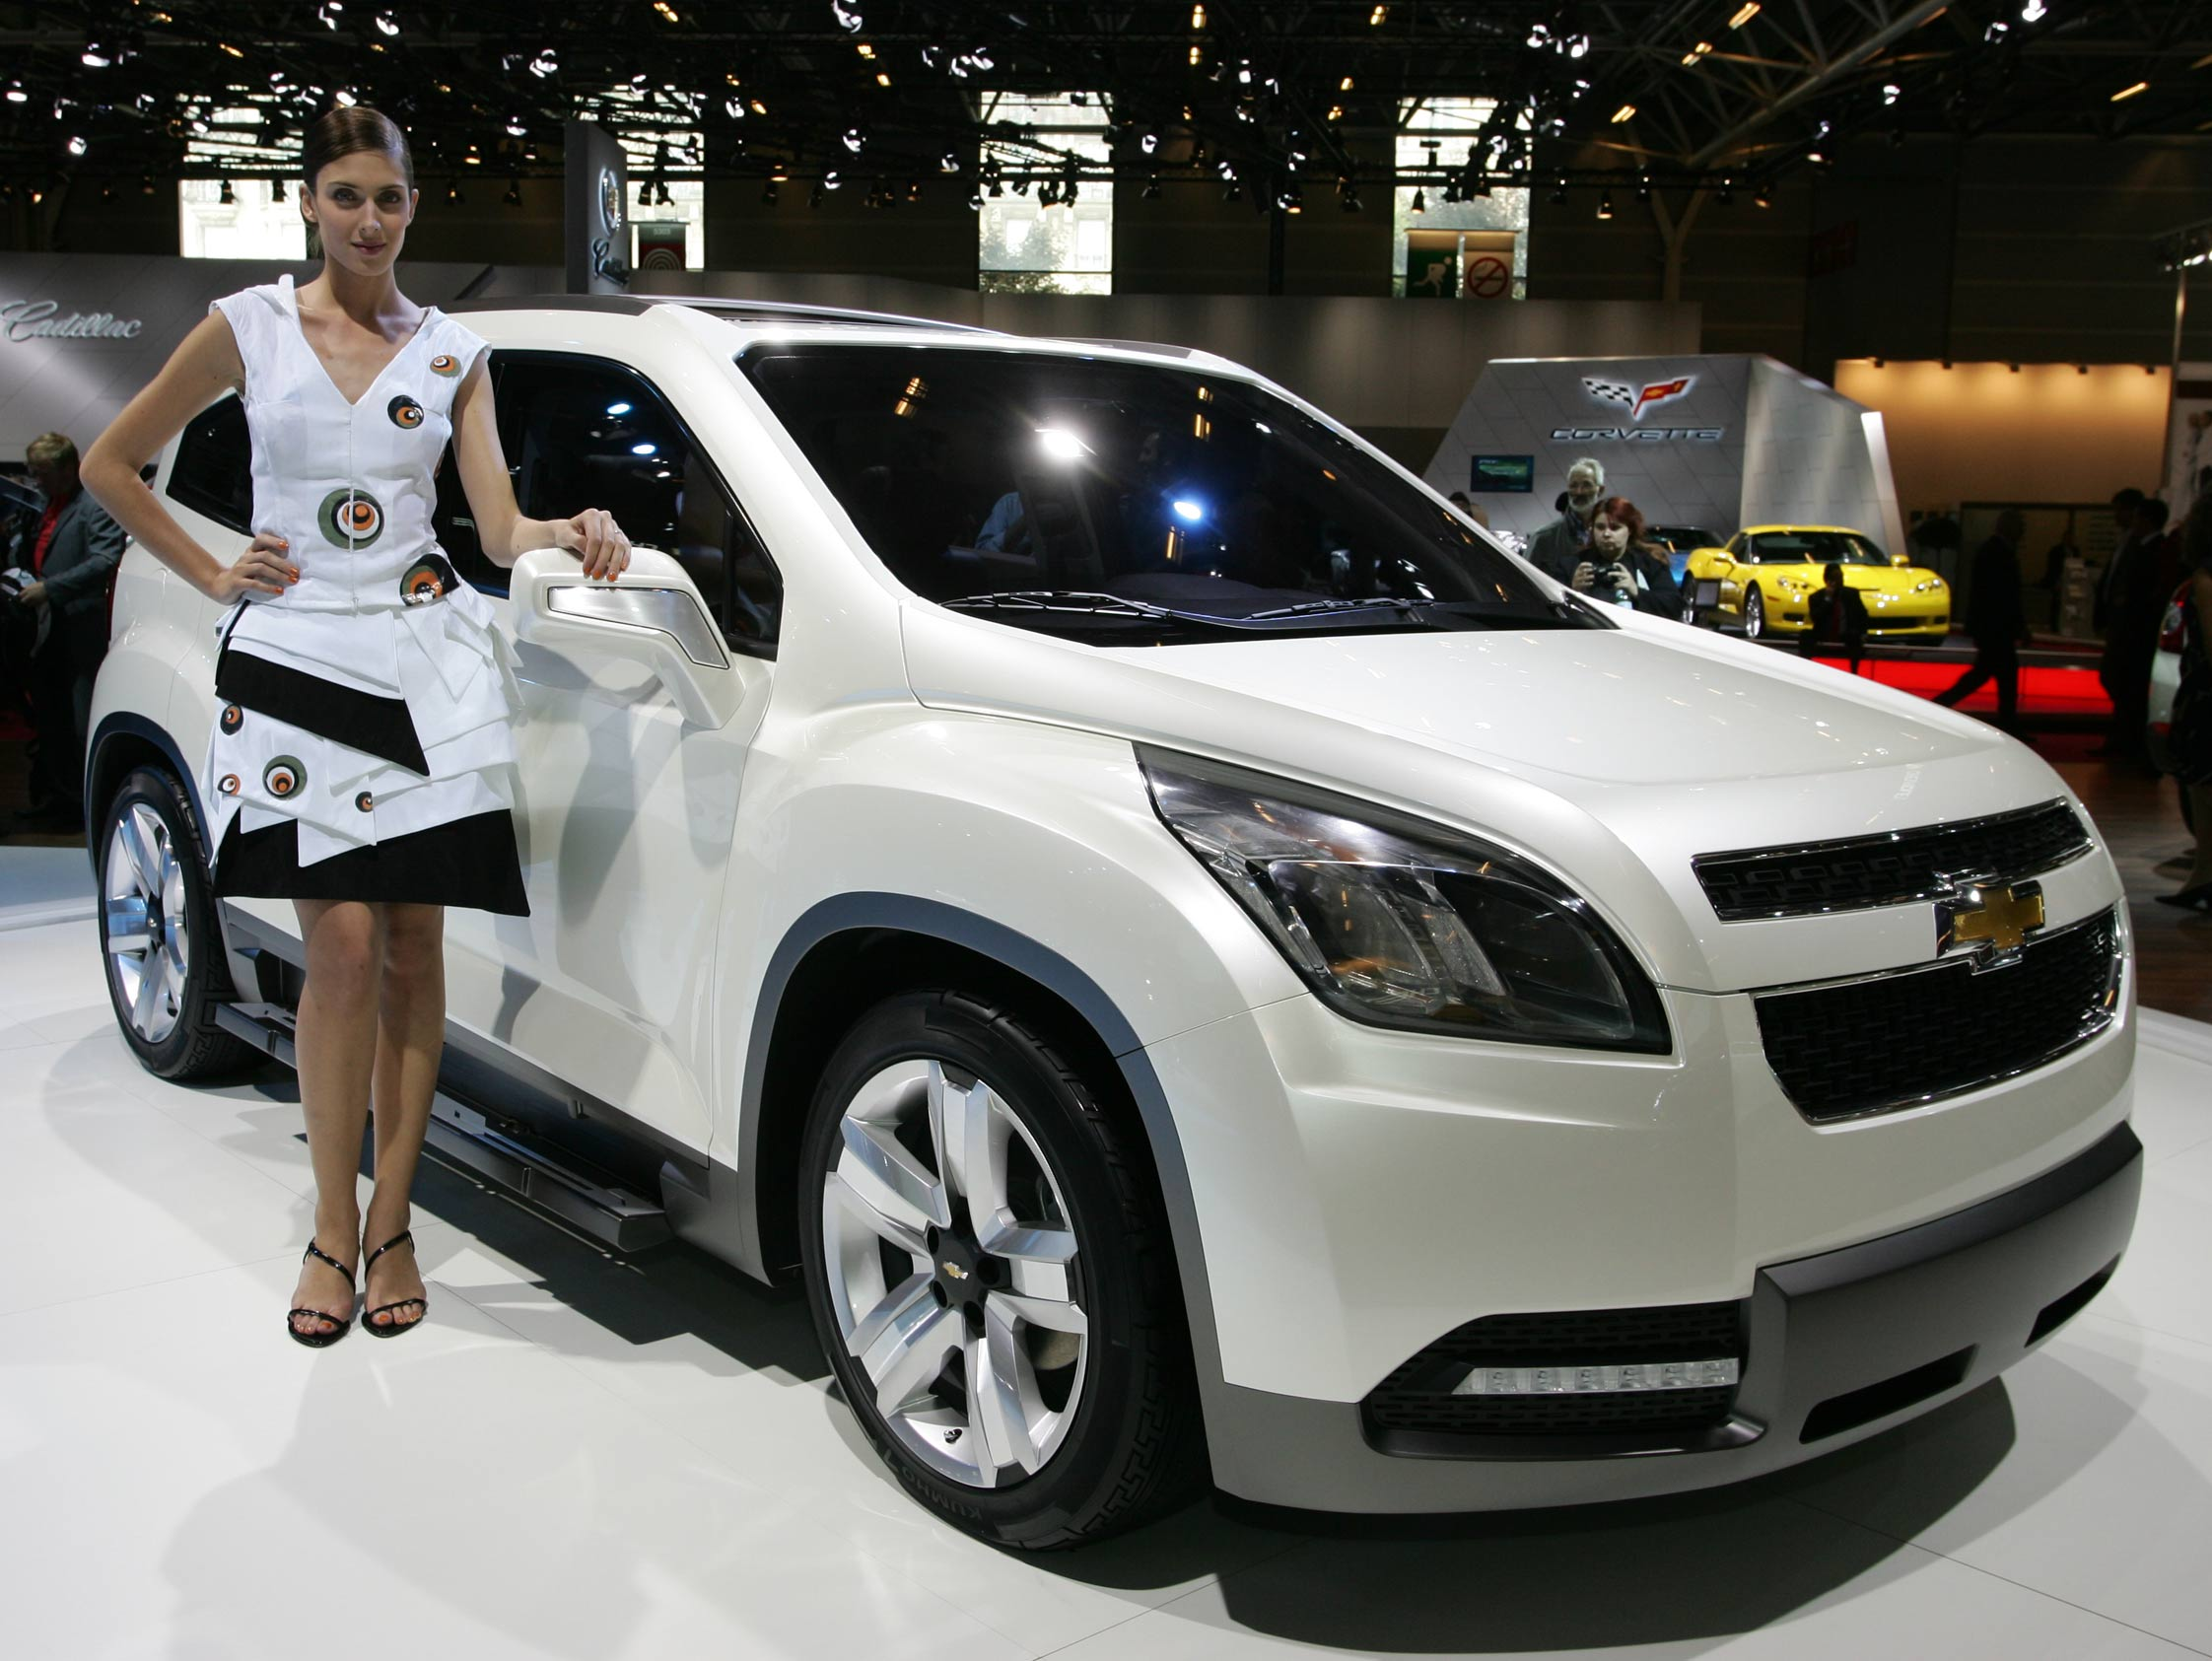 10 upcoming suvs in india under 15 lakhs car whoops for Motor car concepts orlando fl